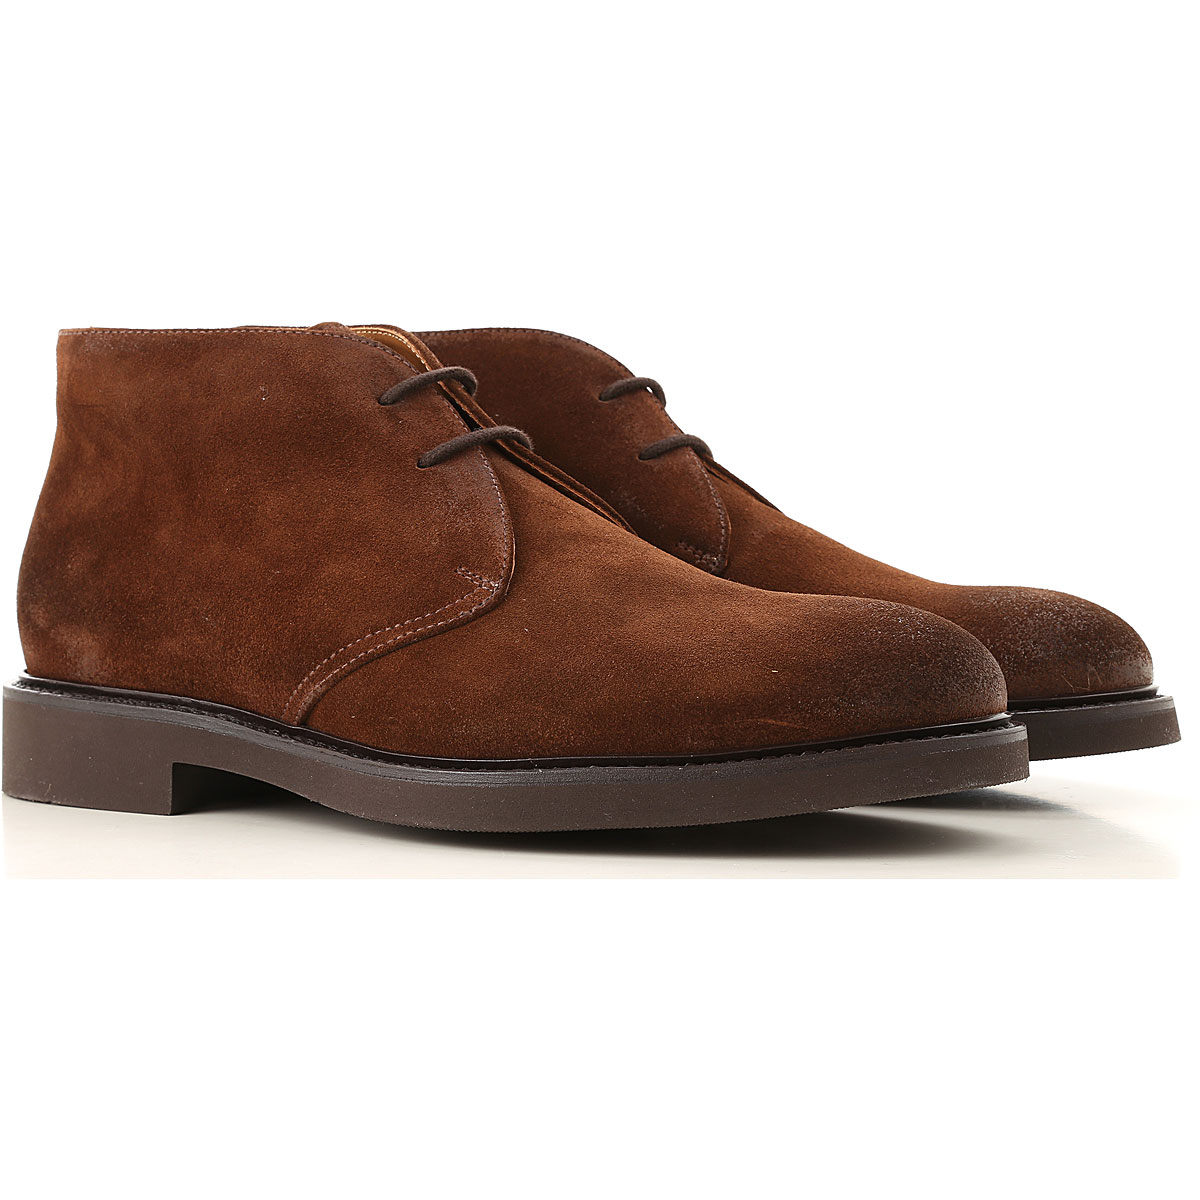 Doucals Desert Boots Chukka for Men, Brown, Suede leather, 2019, 10 12 7.5 8 9